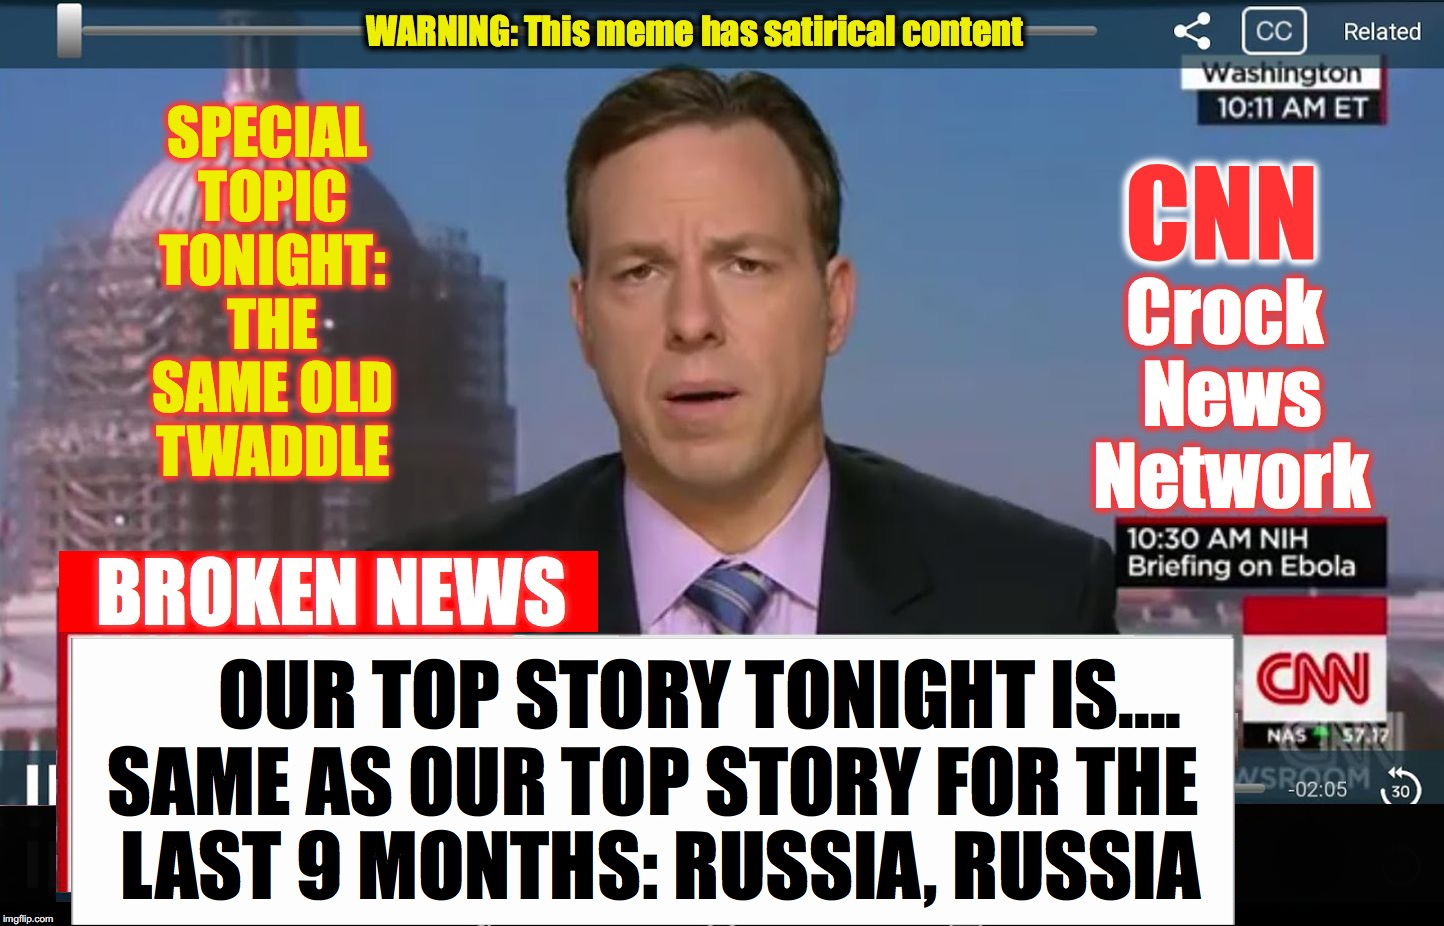 CNN Crock News Network | SPECIAL TOPIC TONIGHT: THE SAME OLD TWADDLE SAME AS OUR TOP STORY FOR THE LAST 9 MONTHS: RUSSIA, RUSSIA OUR TOP STORY TONIGHT IS.... | image tagged in cnn crock news network | made w/ Imgflip meme maker